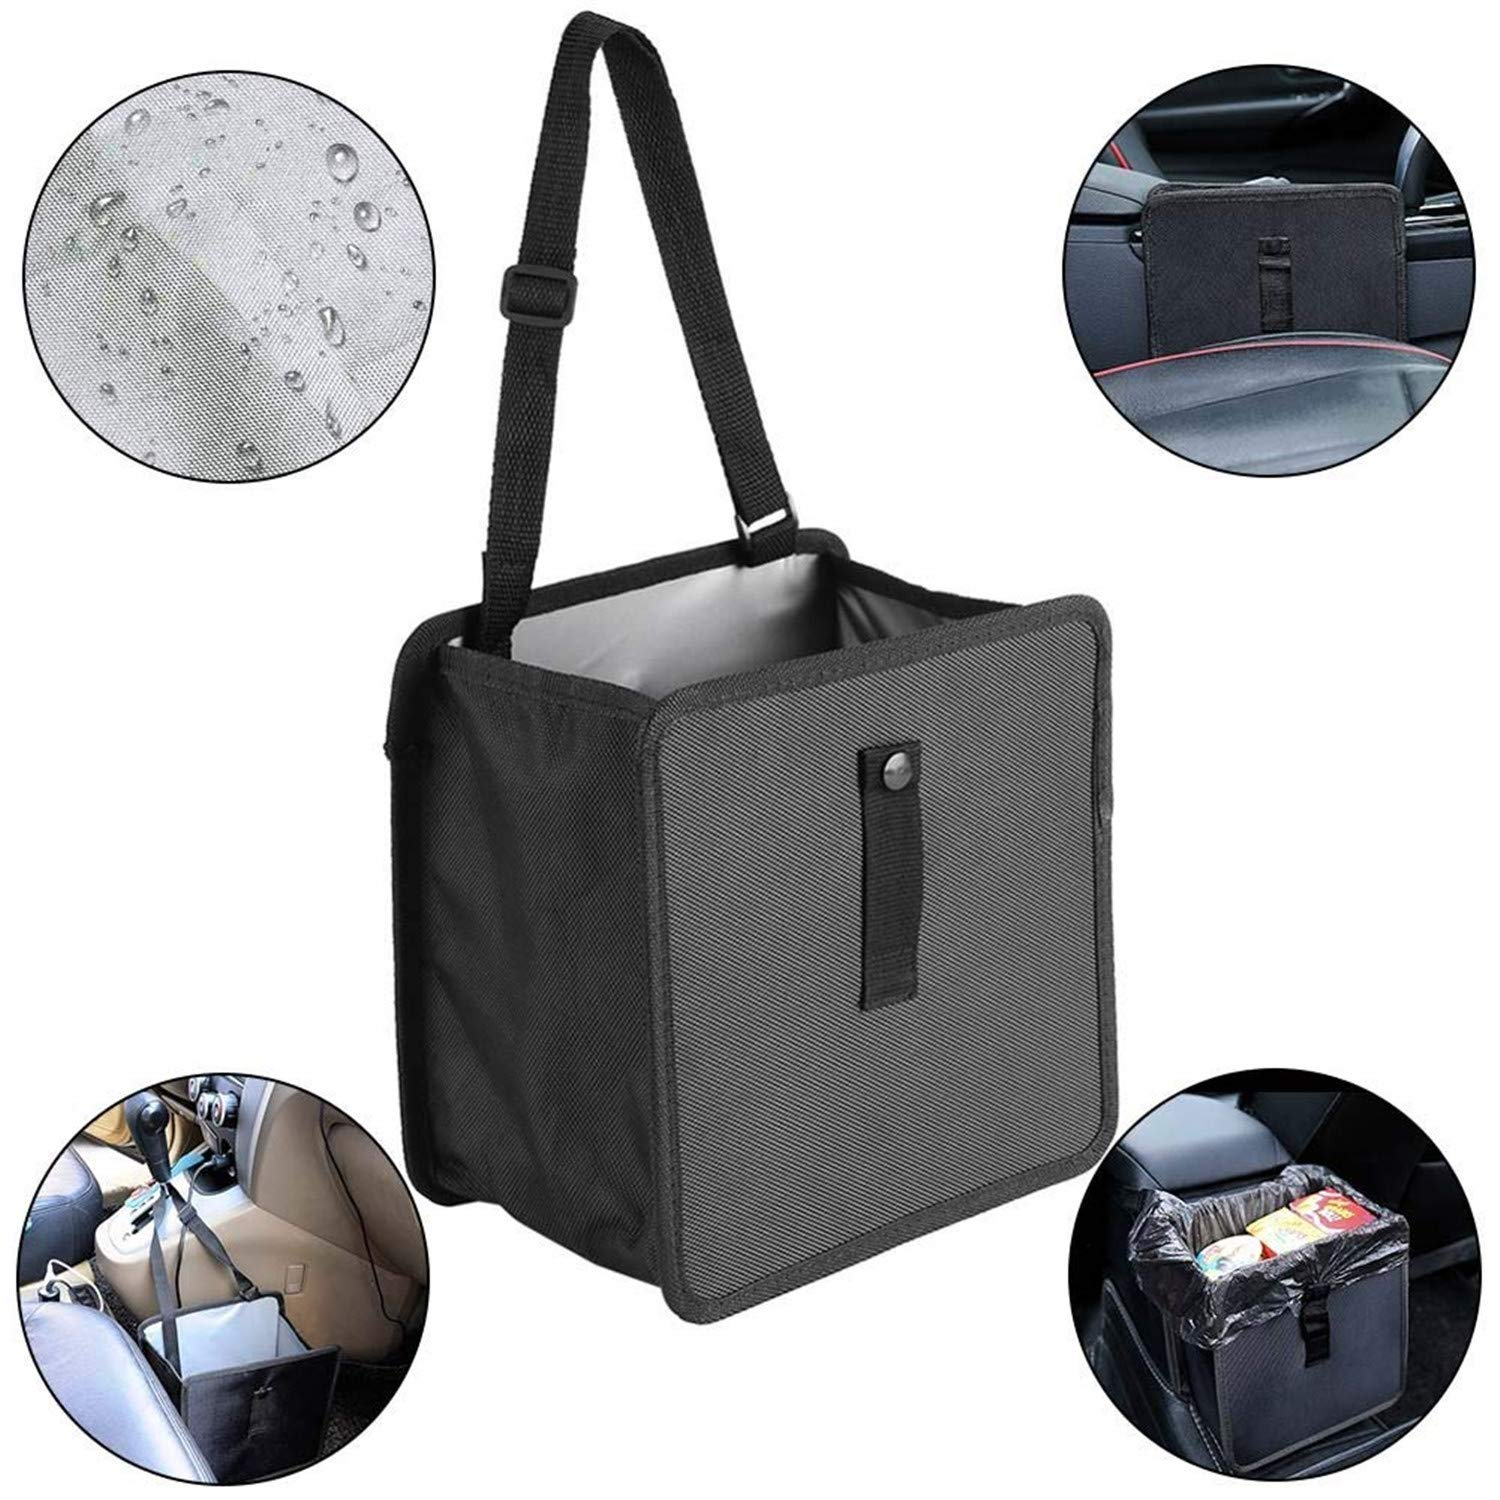 Car Trash Bag Hanging Garbage Cans Car Garbage Can Waterproof Leakproof Car Seat Organizer for SUV Truck House 1.85 Gallon Capacity, Black Datitiger